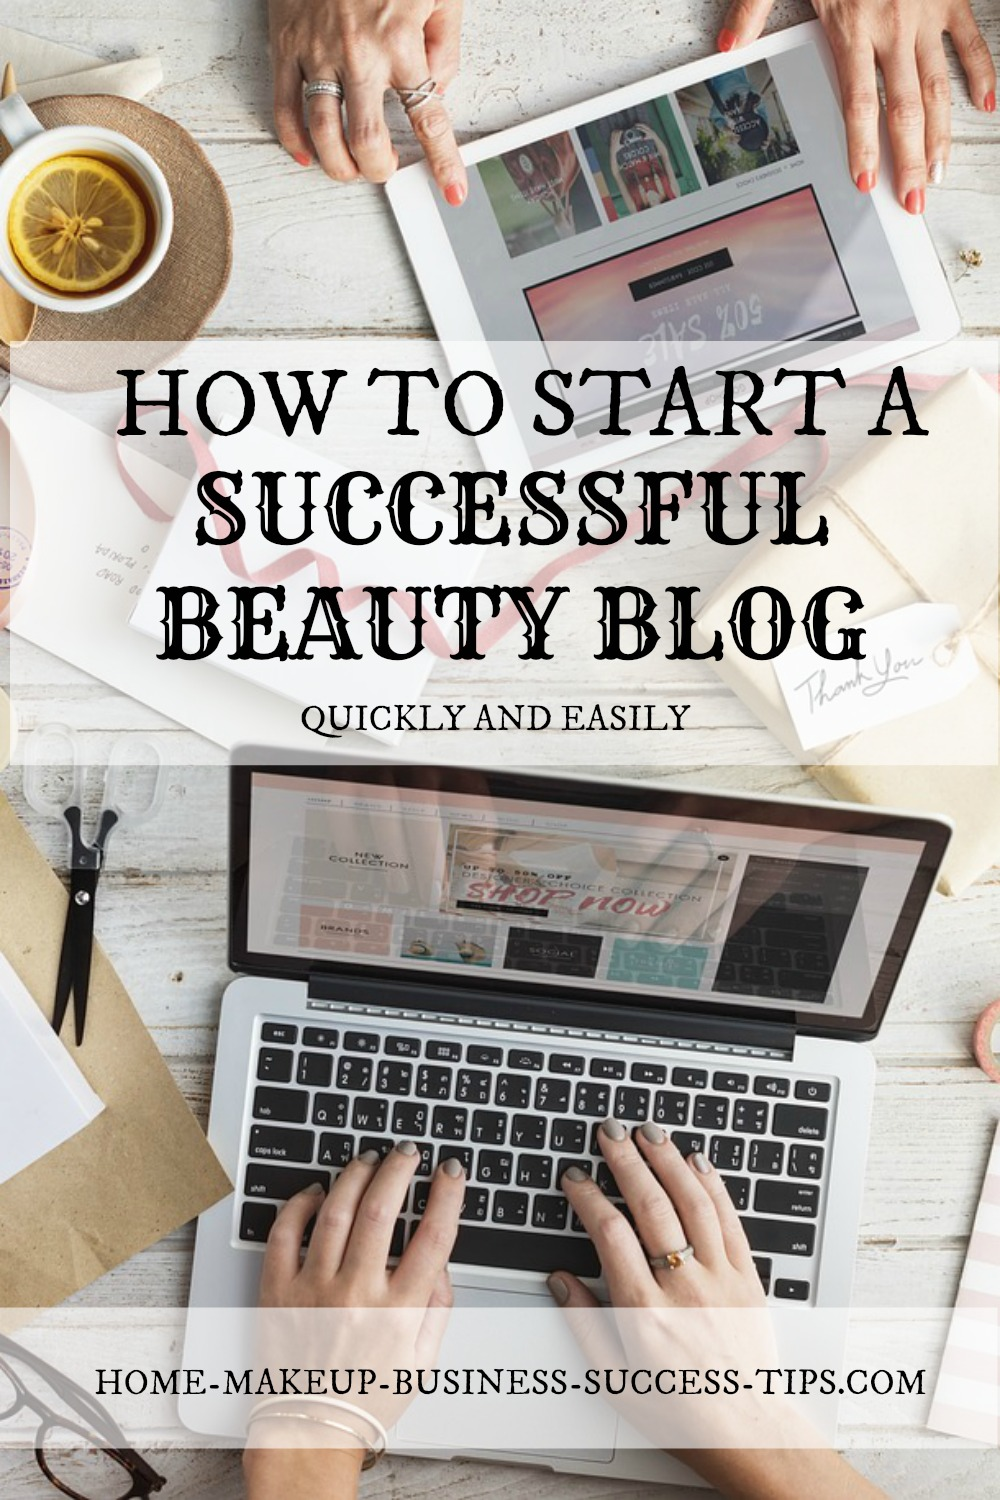 How to Start a Successful Beauty Blog